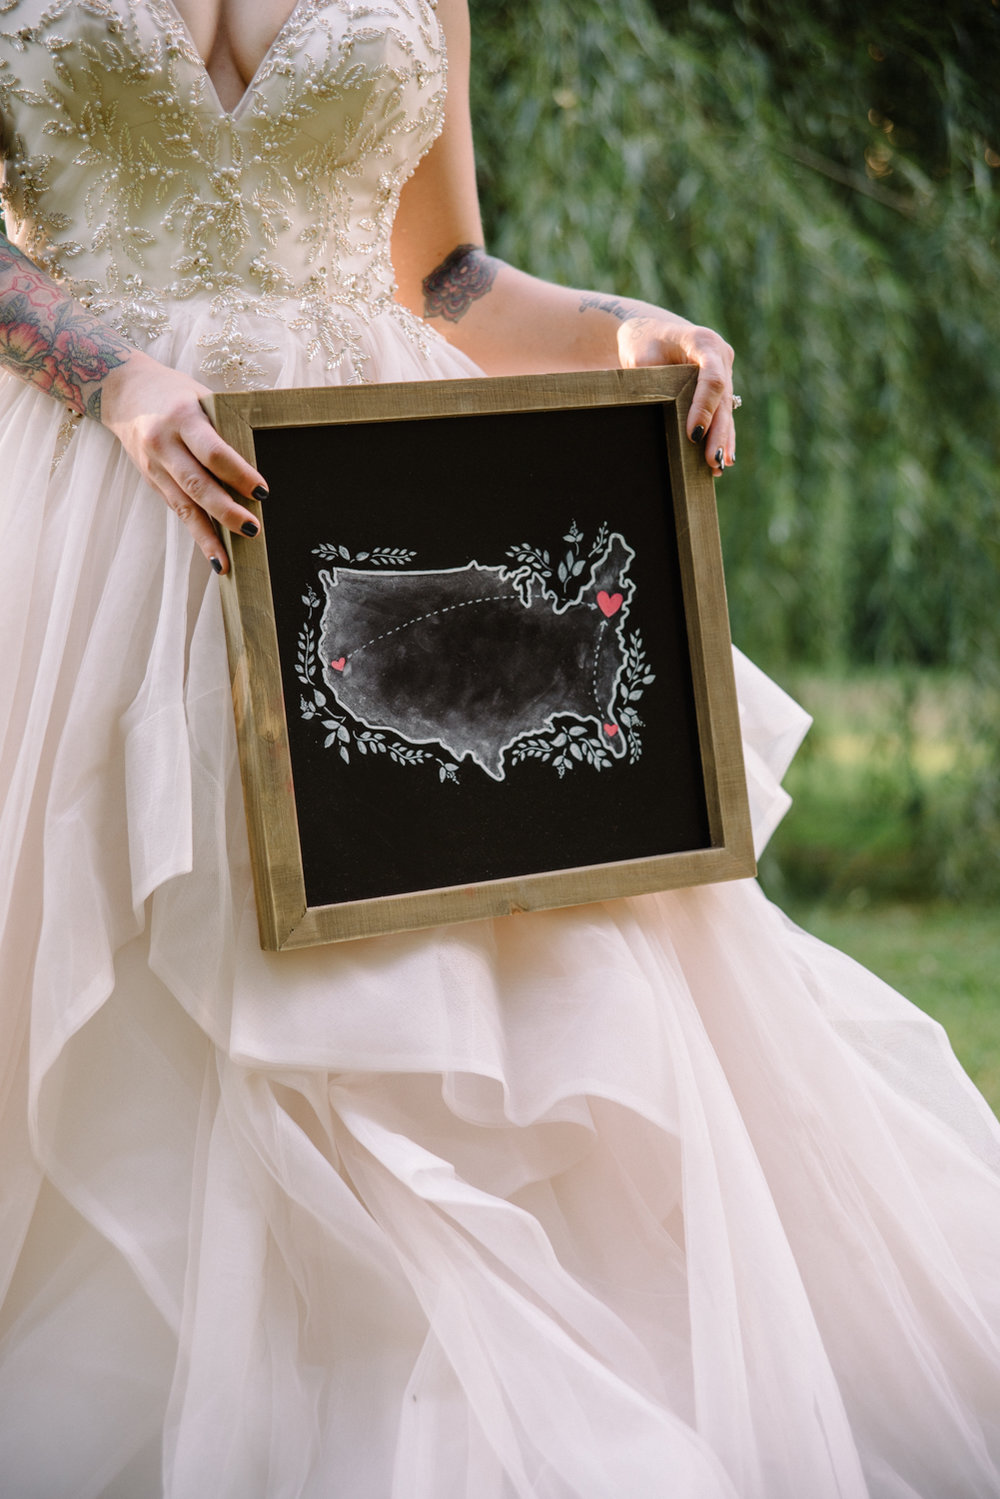 Medium Chalkboard •  Telling stories with illustrations